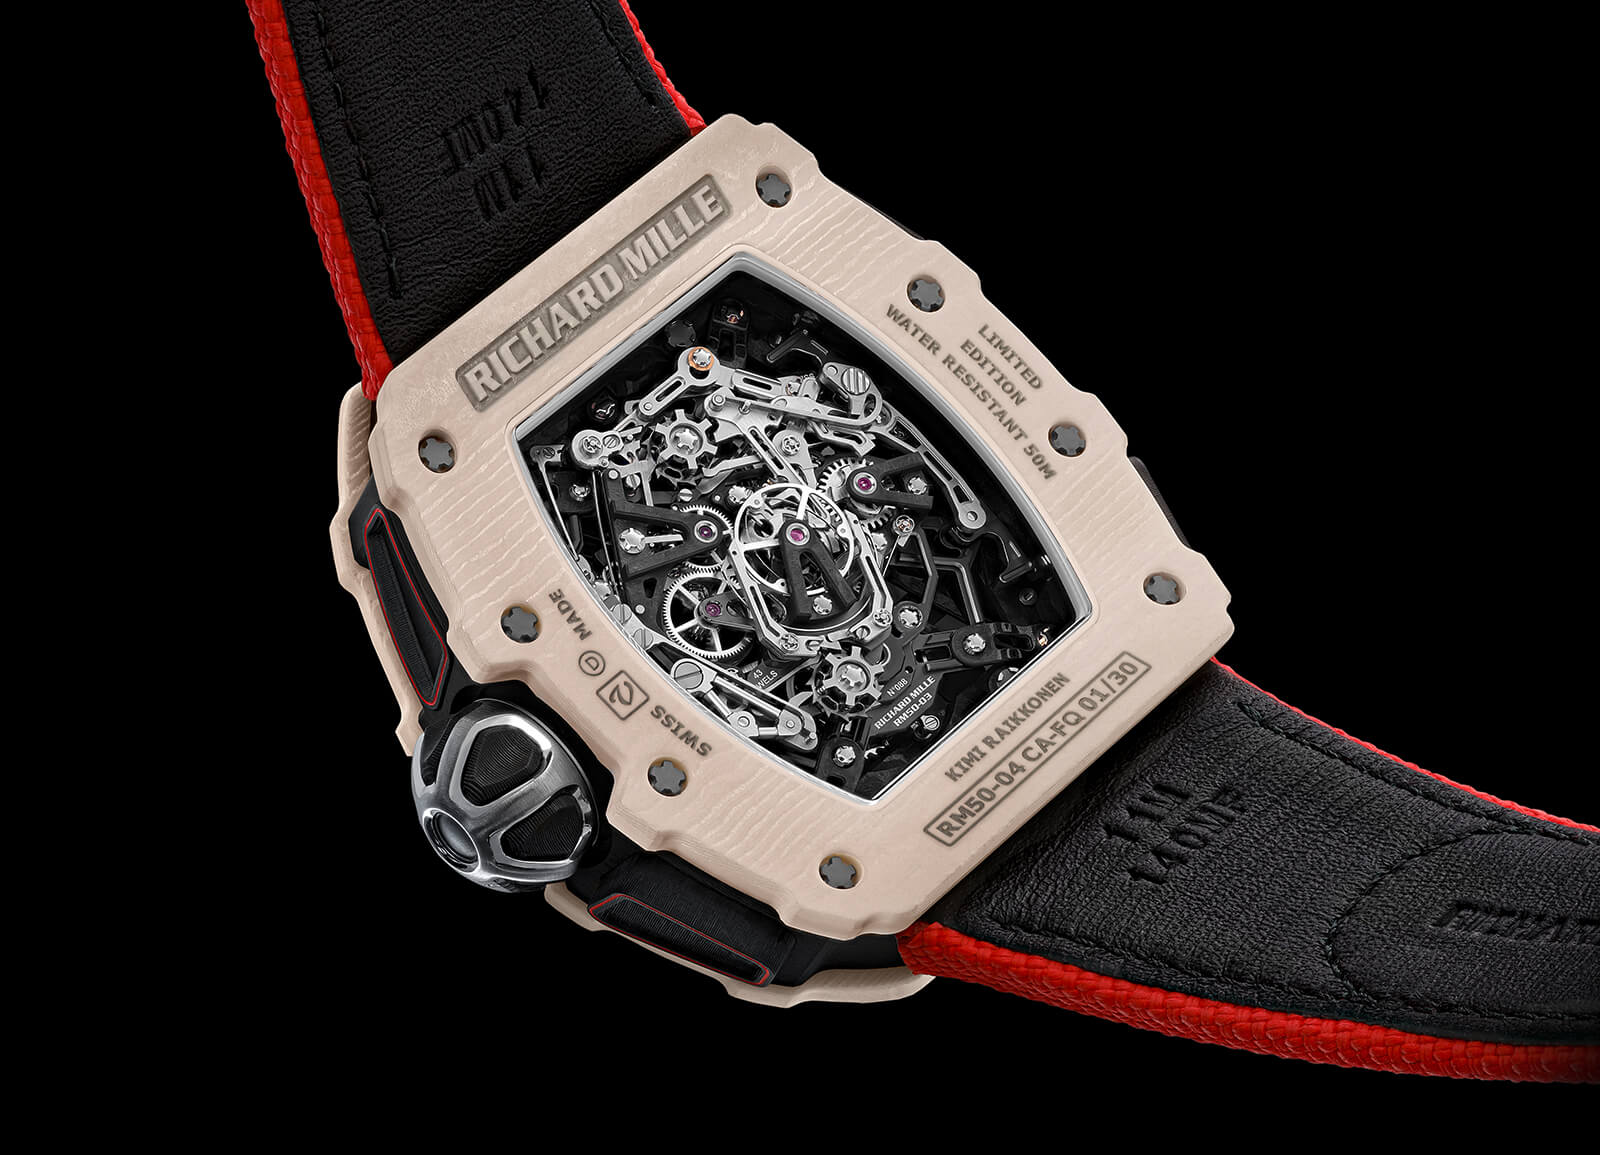 Richard-Mille-RM-50-04-Tourbillon-Split-Seconds-Chronograph-Kimi-Raikkonen-Limited-Edition-5